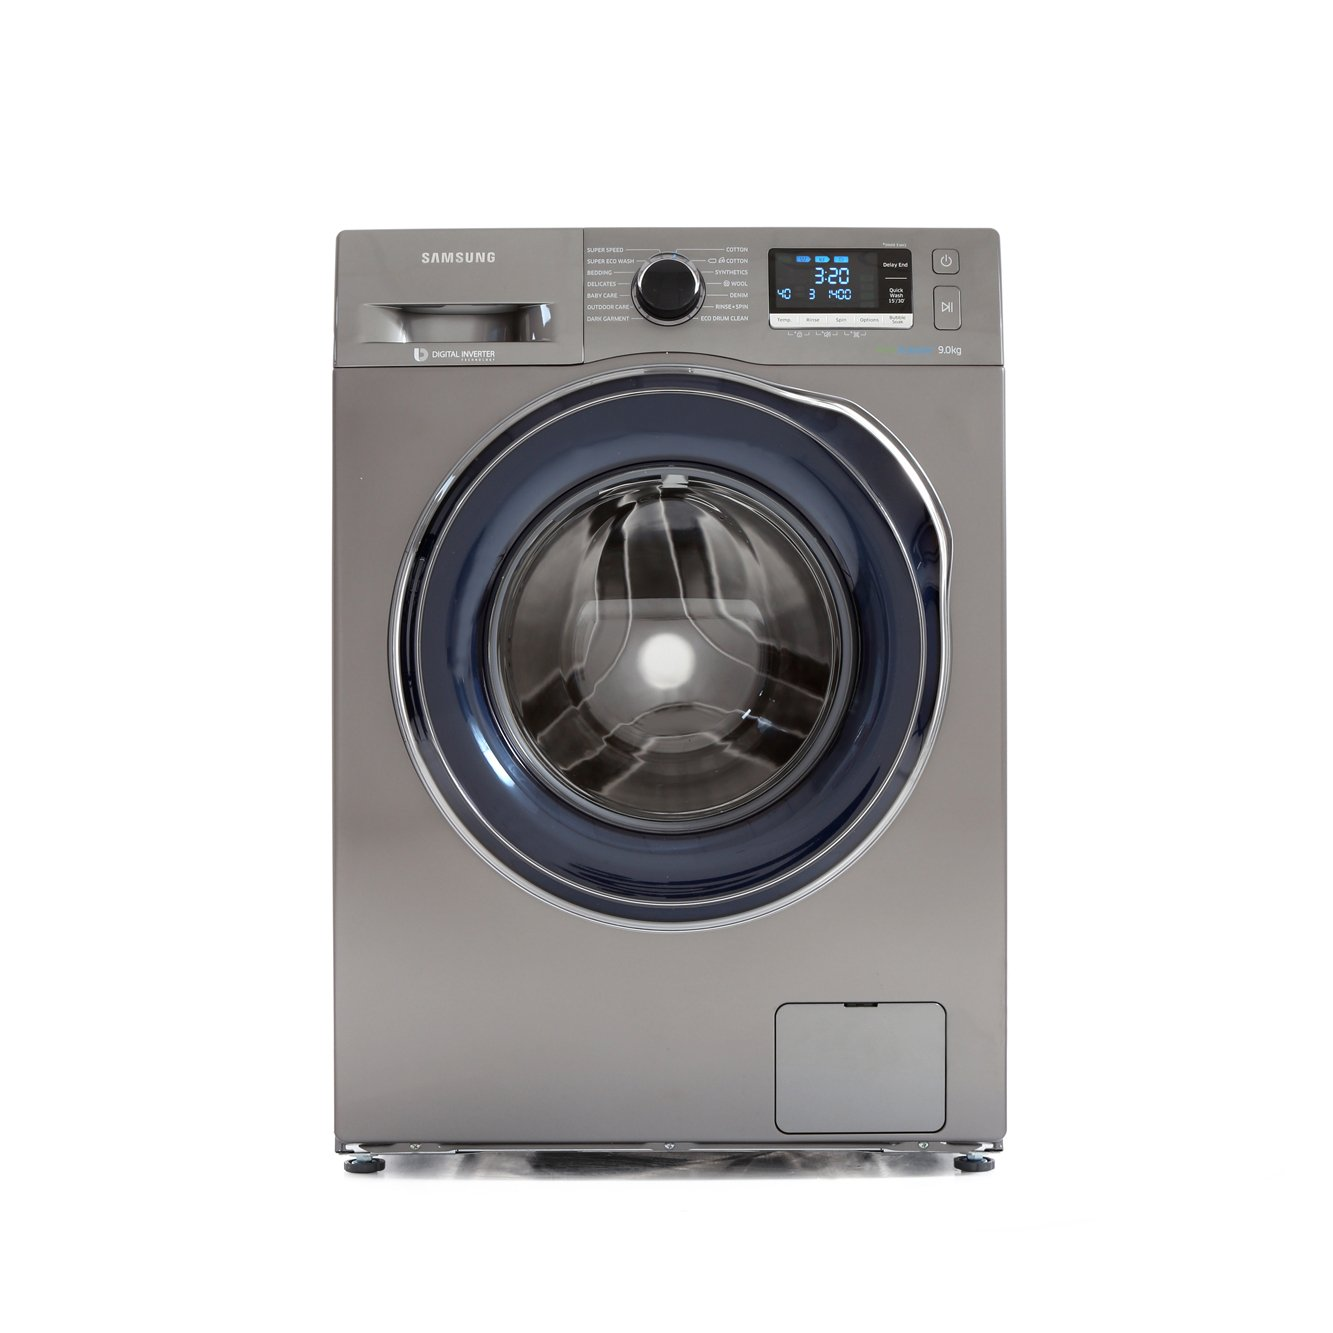 Buy Samsung WW90J6410CX Washing Machine - Inox | Marks ...